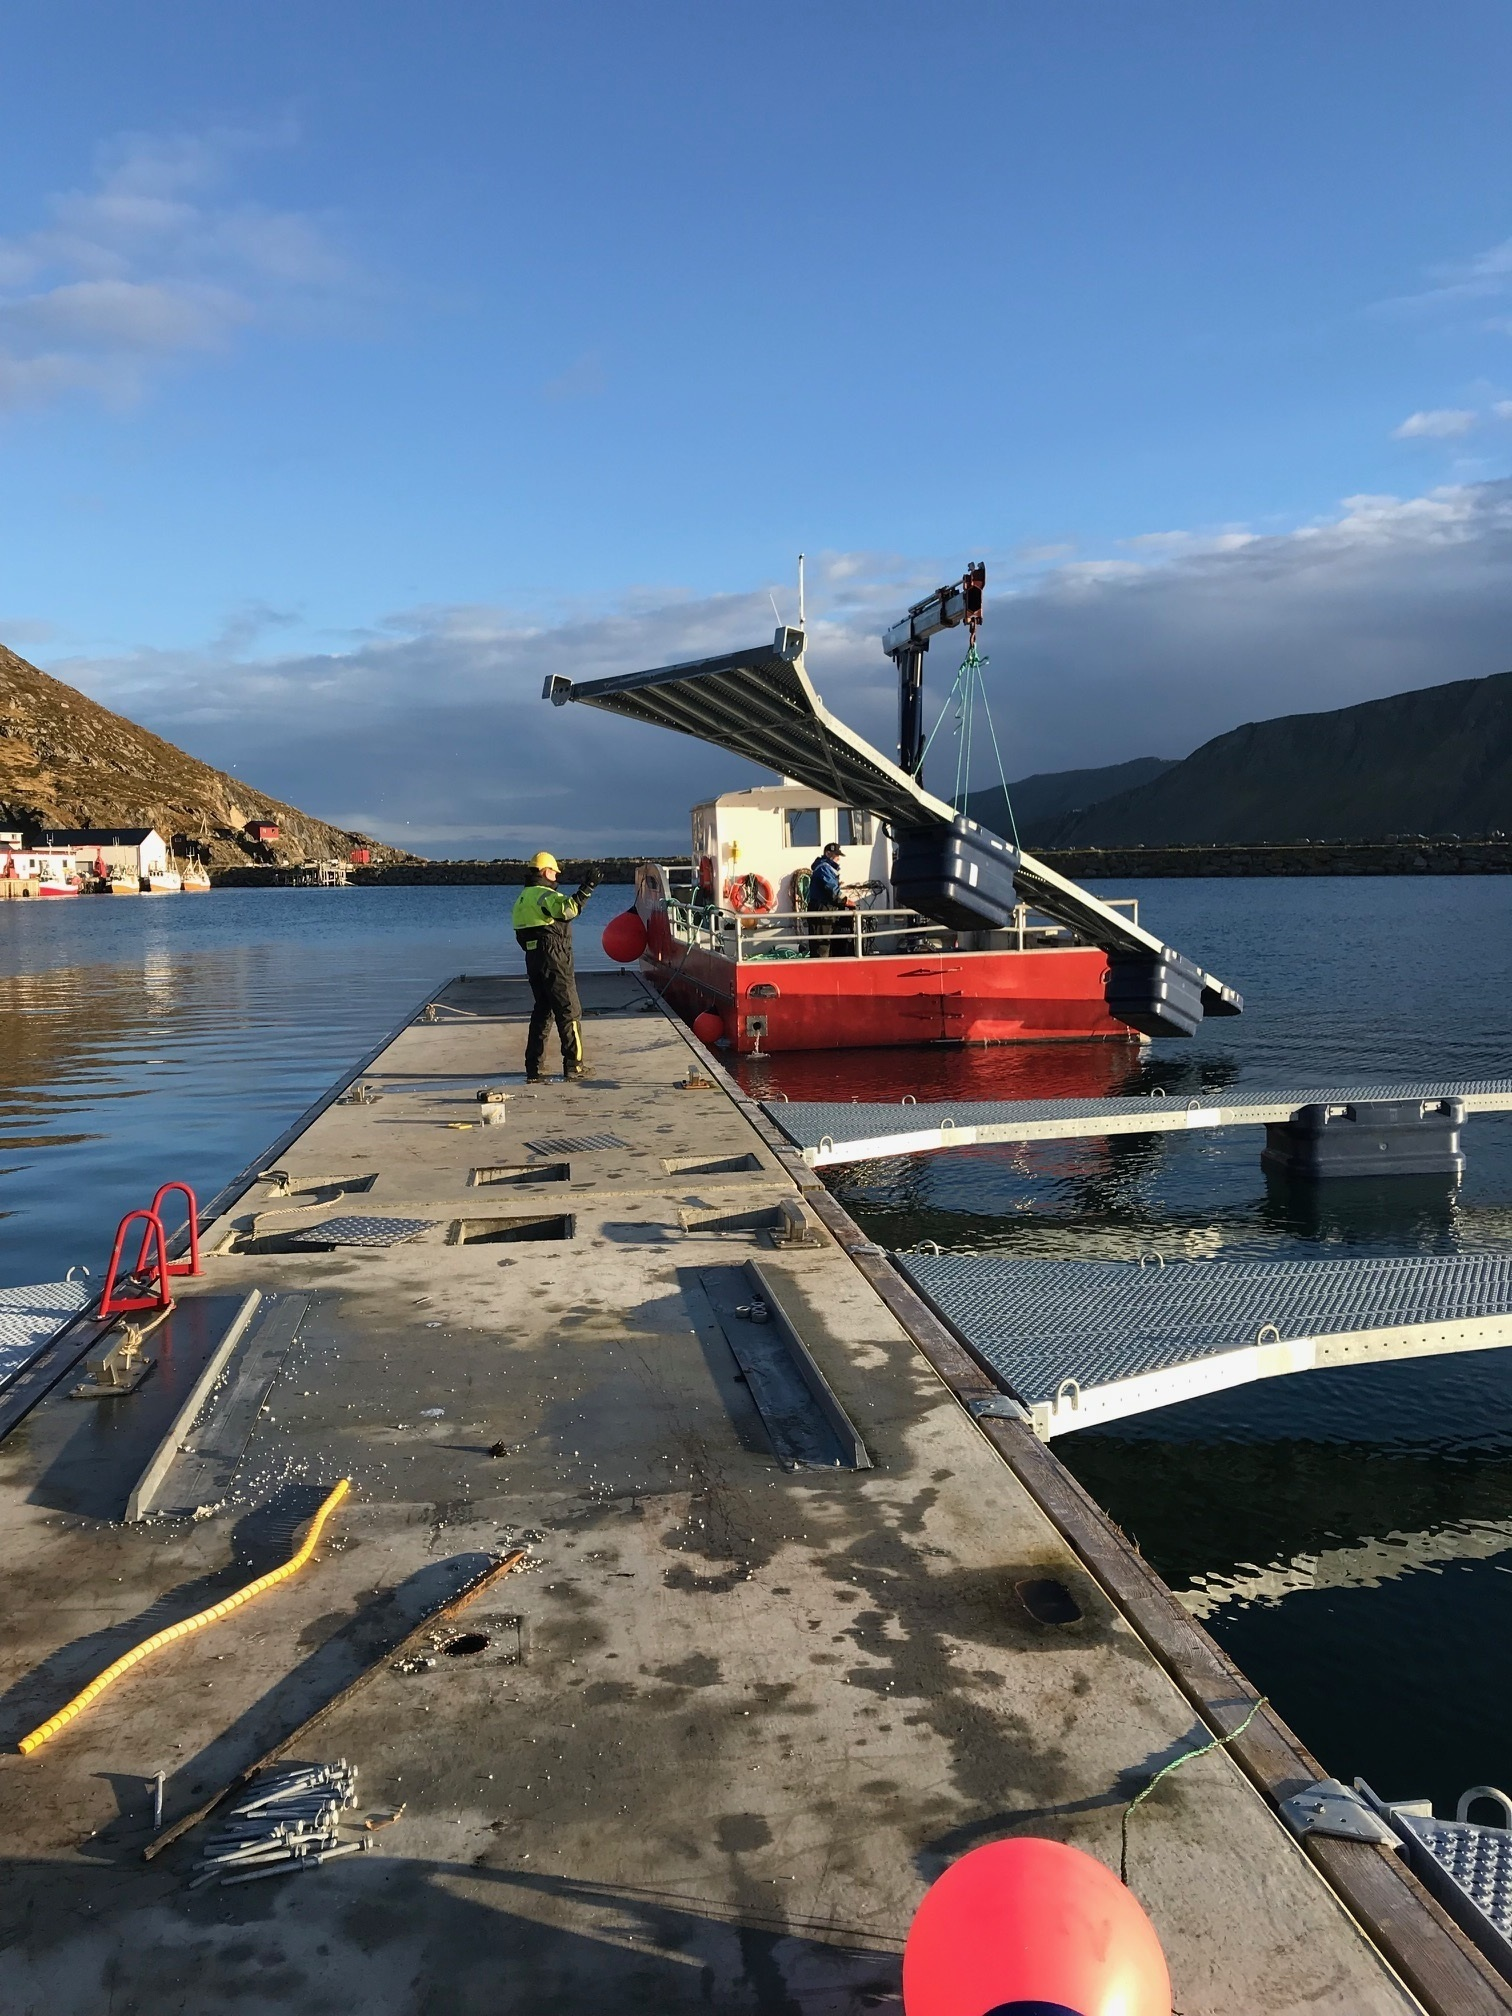 https://marinasolutions.no/uploads/Nordkappregionen-havn-Skarsvåg-2018-2.jpg